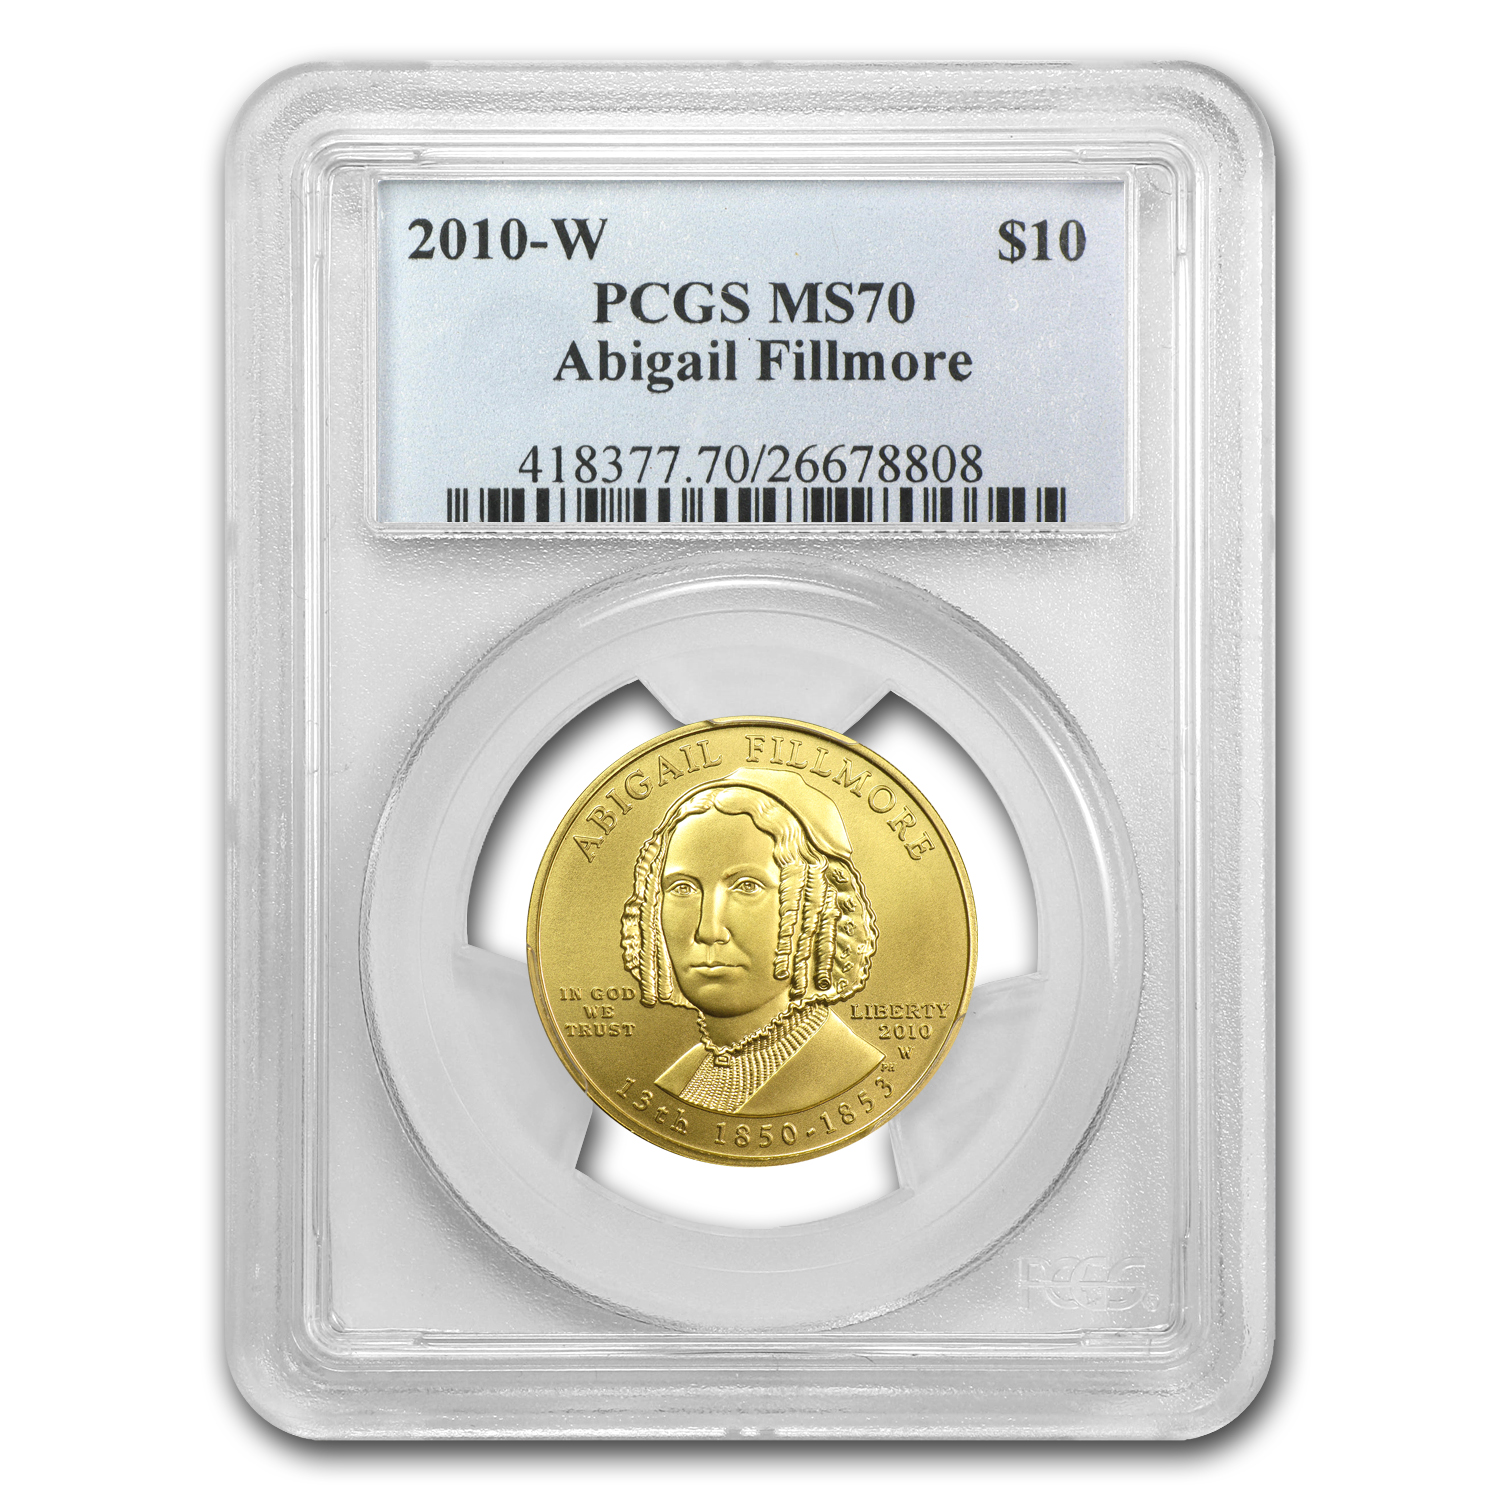 2010-W 1/2 oz Gold Abigail Fillmore MS-70 PCGS